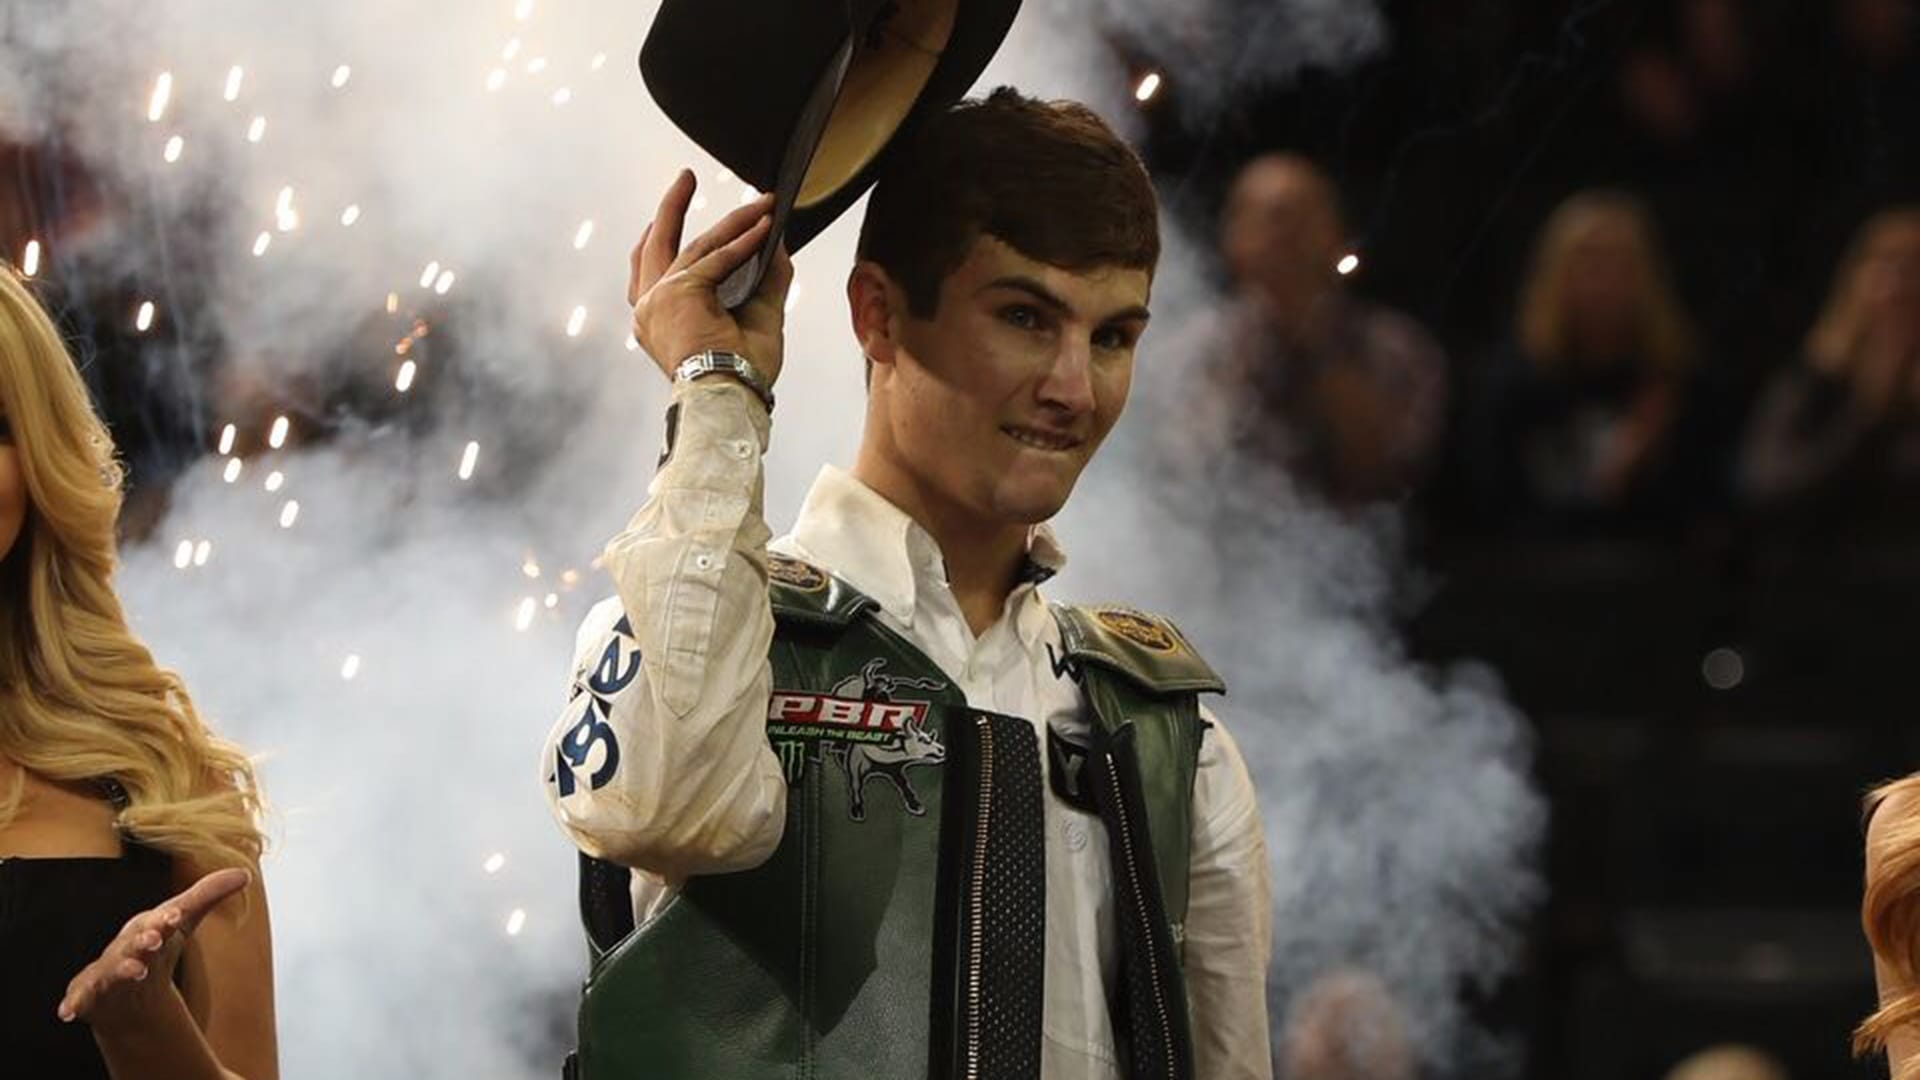 2017 PBR World Champion Lockwood wins Monster Energy Buck Off at The Garden